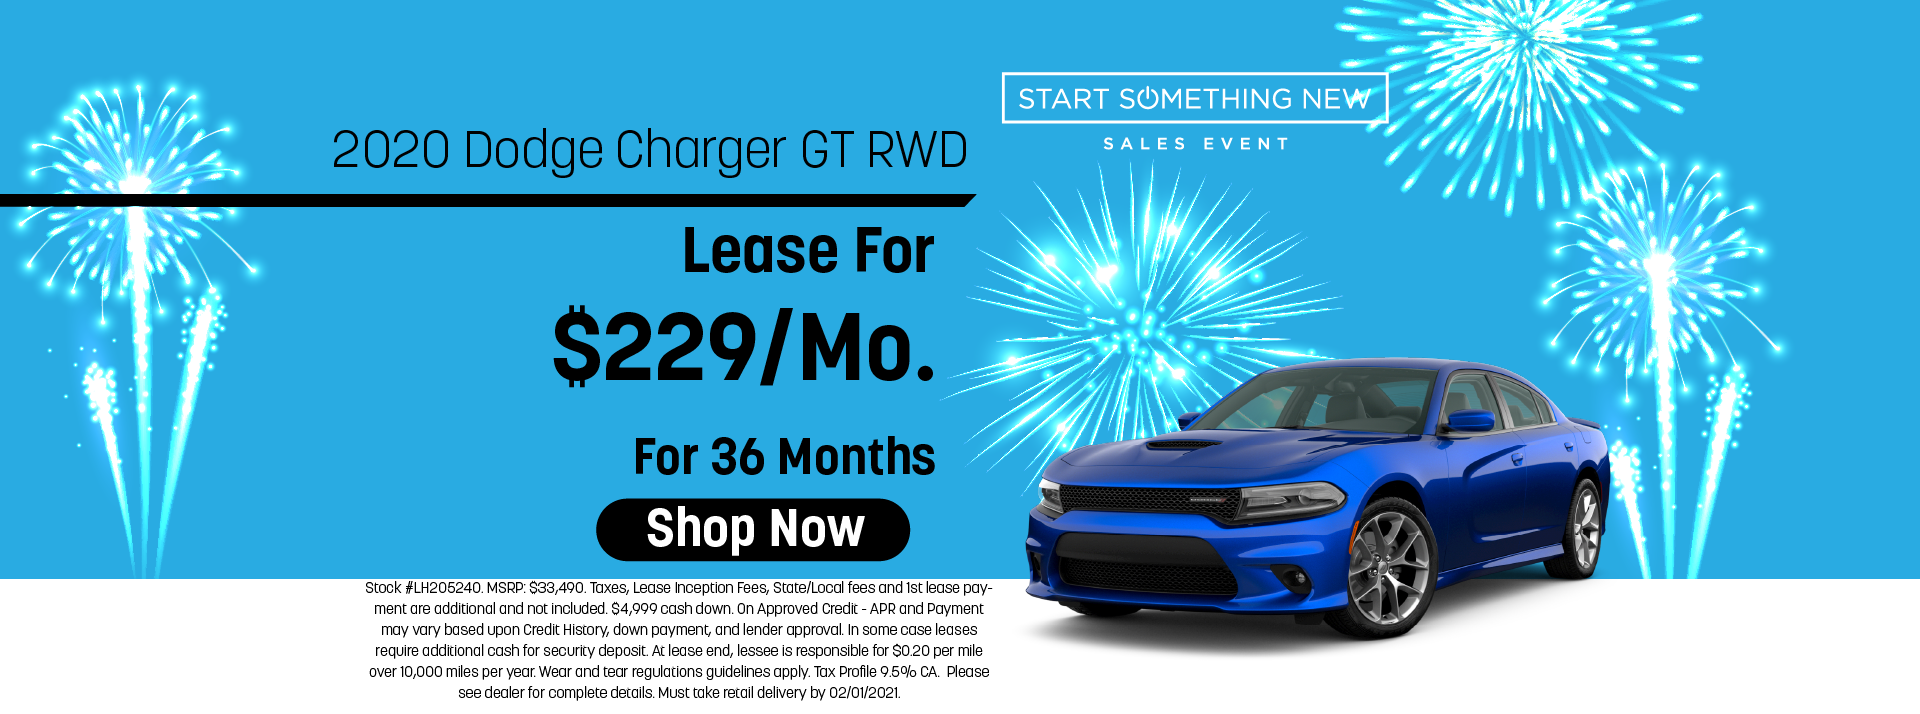 Dodge Charger lease